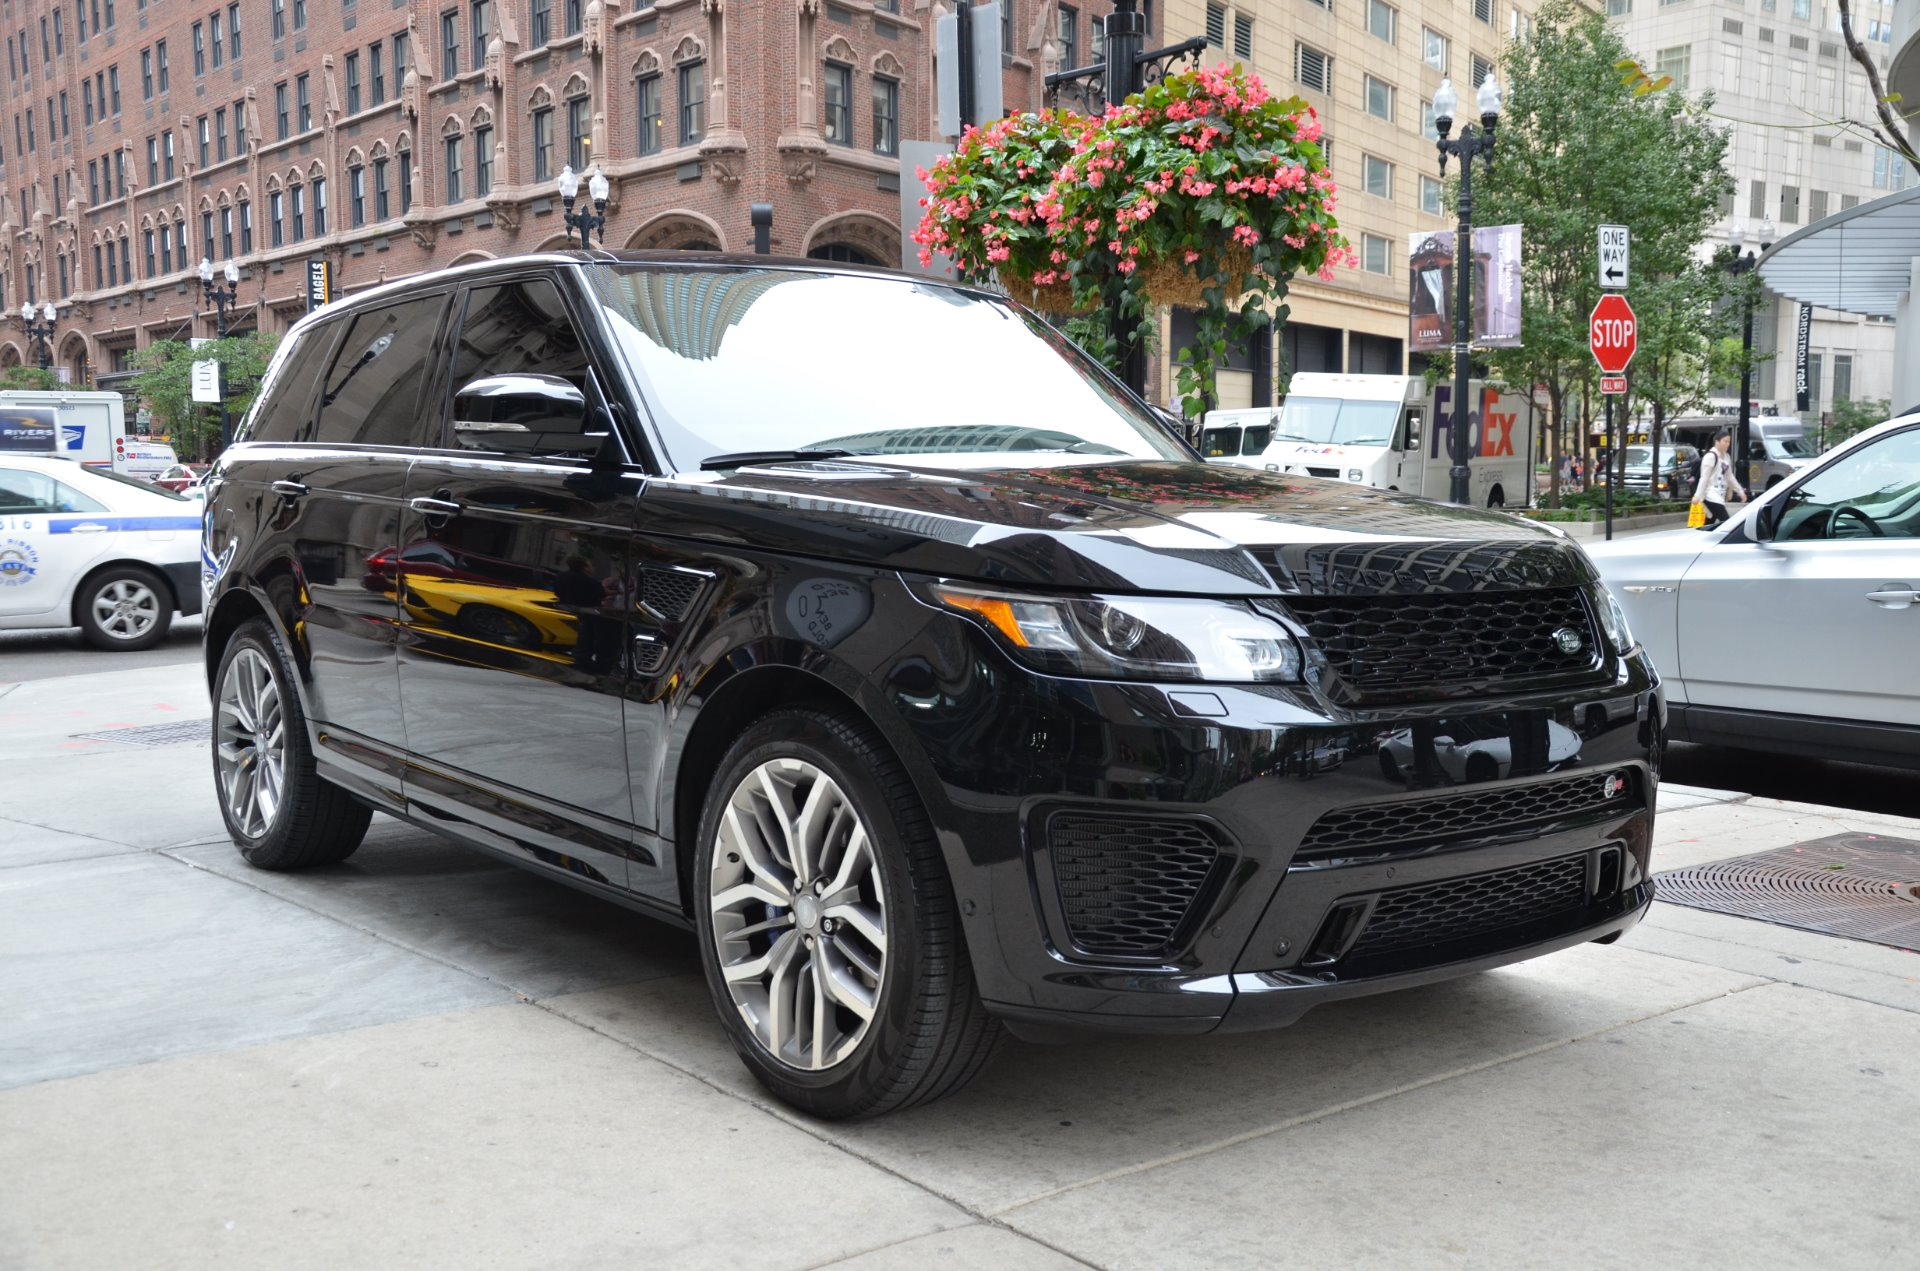 2015 land rover range rover sport svr stock 528487 for sale near chicago il il land rover. Black Bedroom Furniture Sets. Home Design Ideas